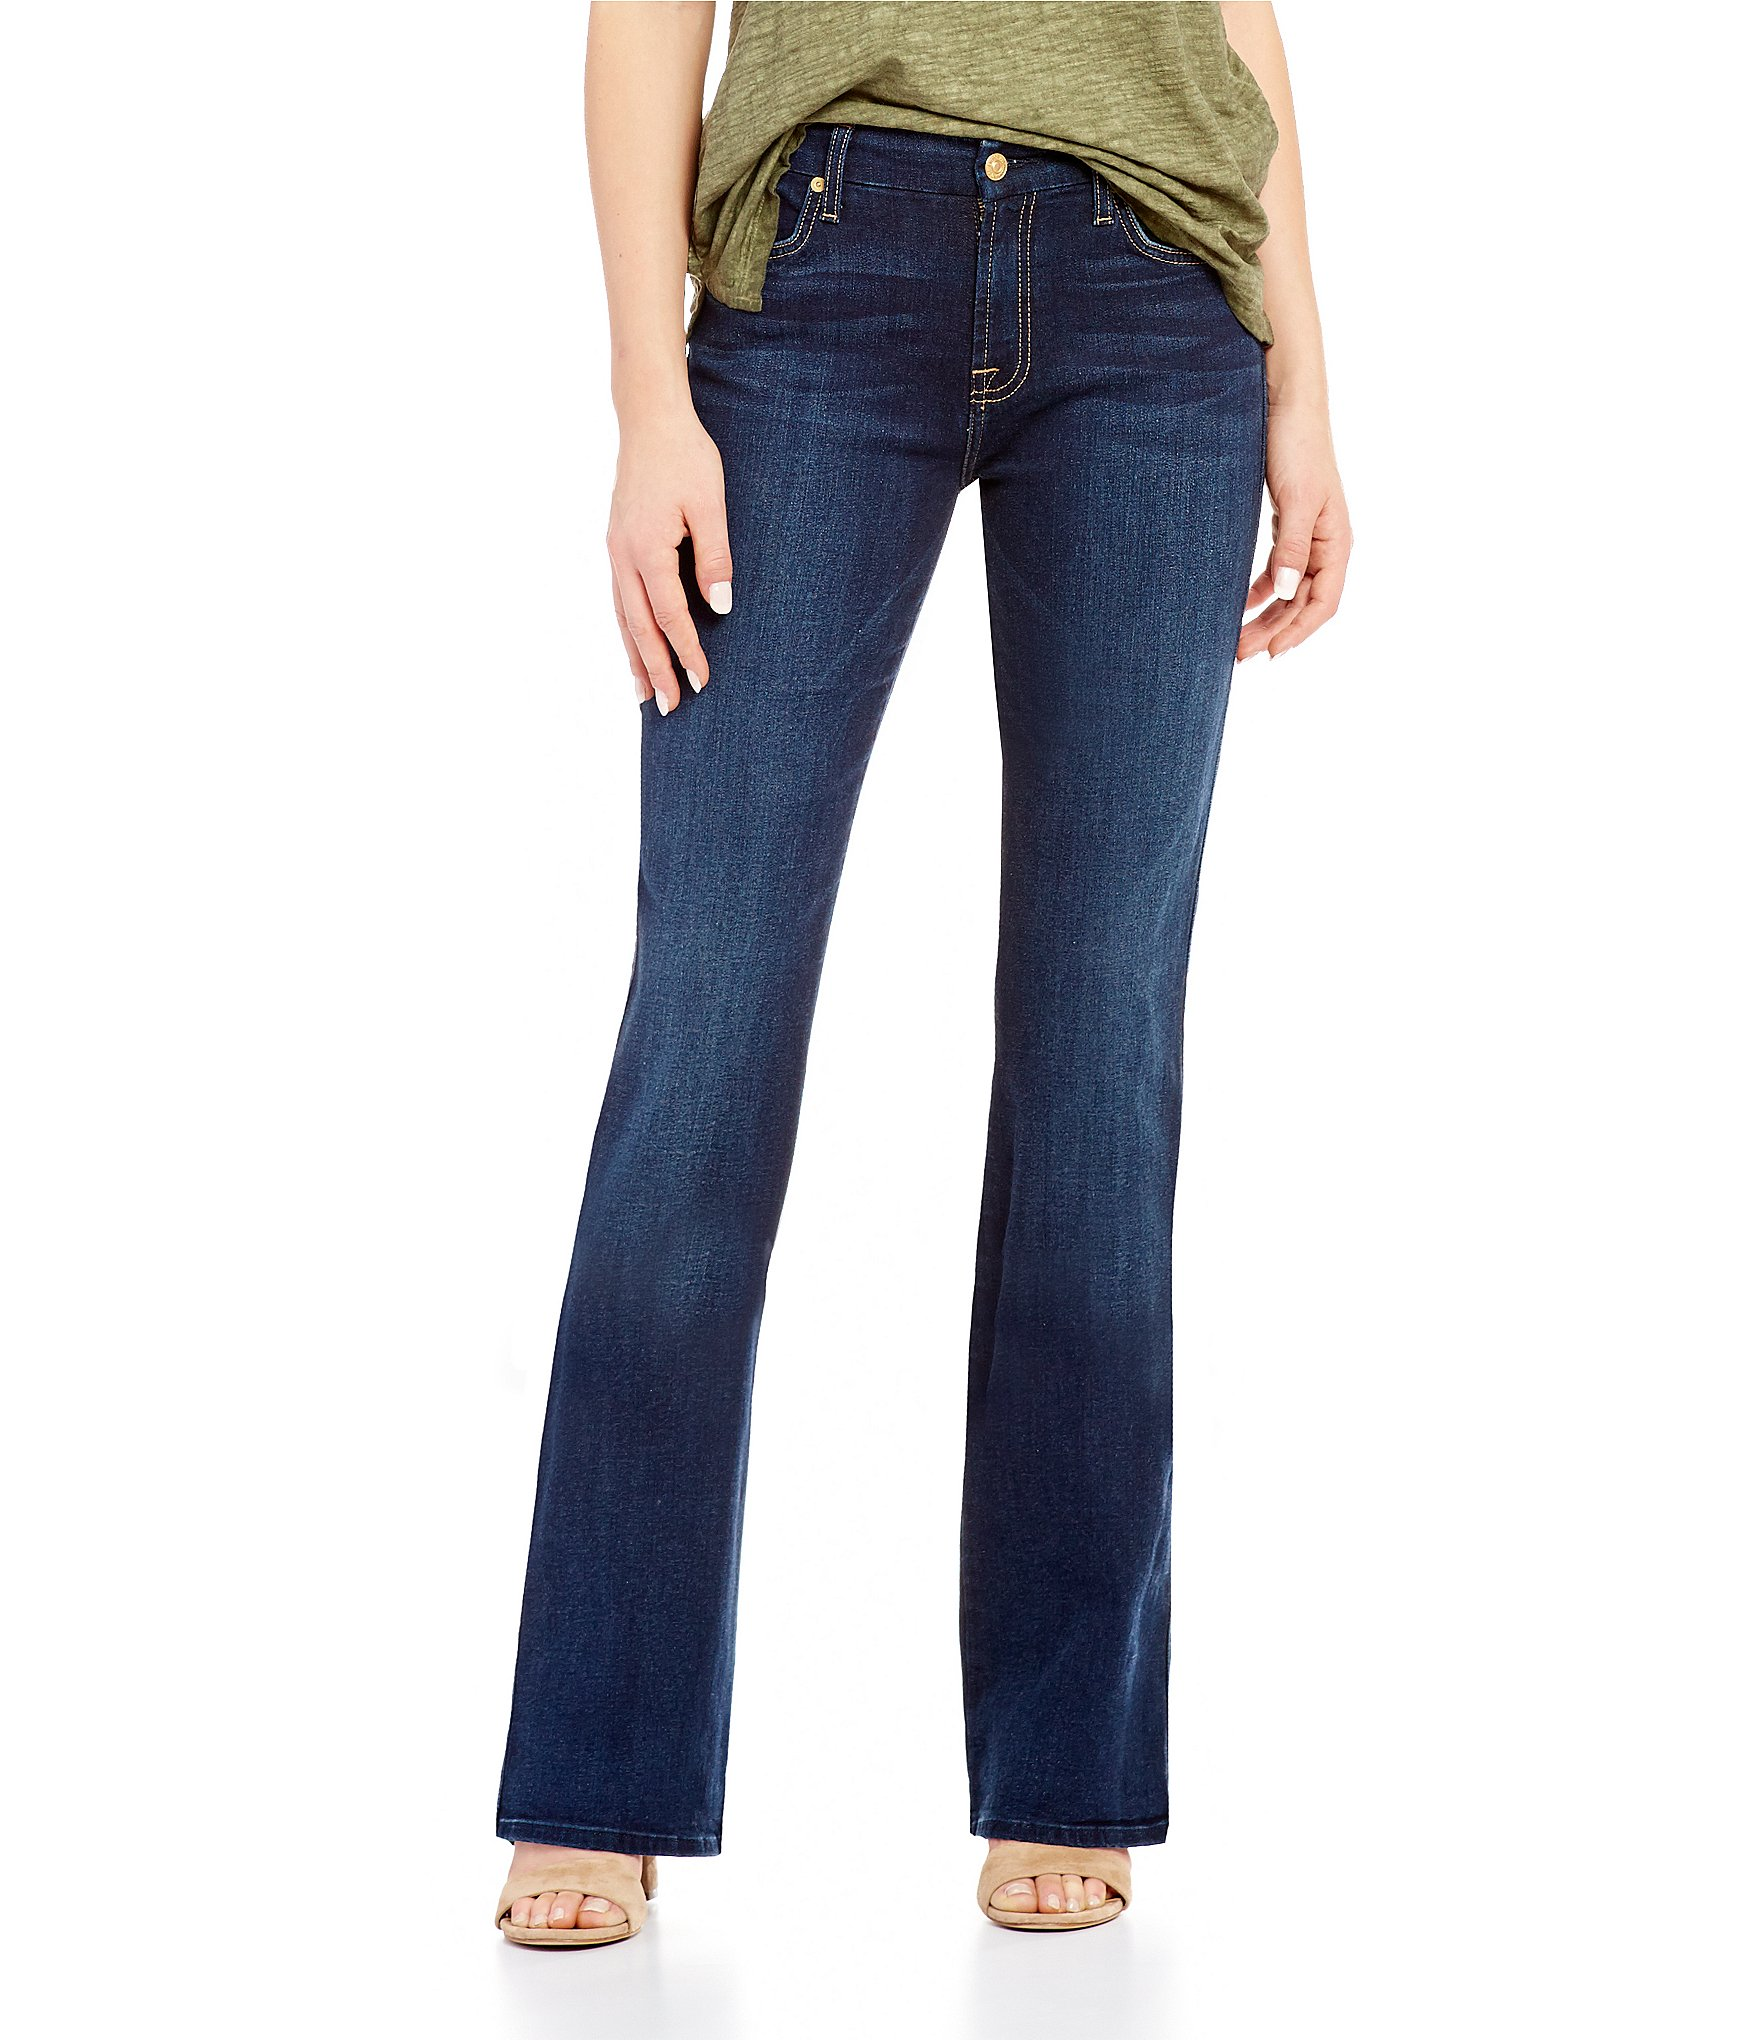 69270215ea9 7 for all mankind | Dillard's